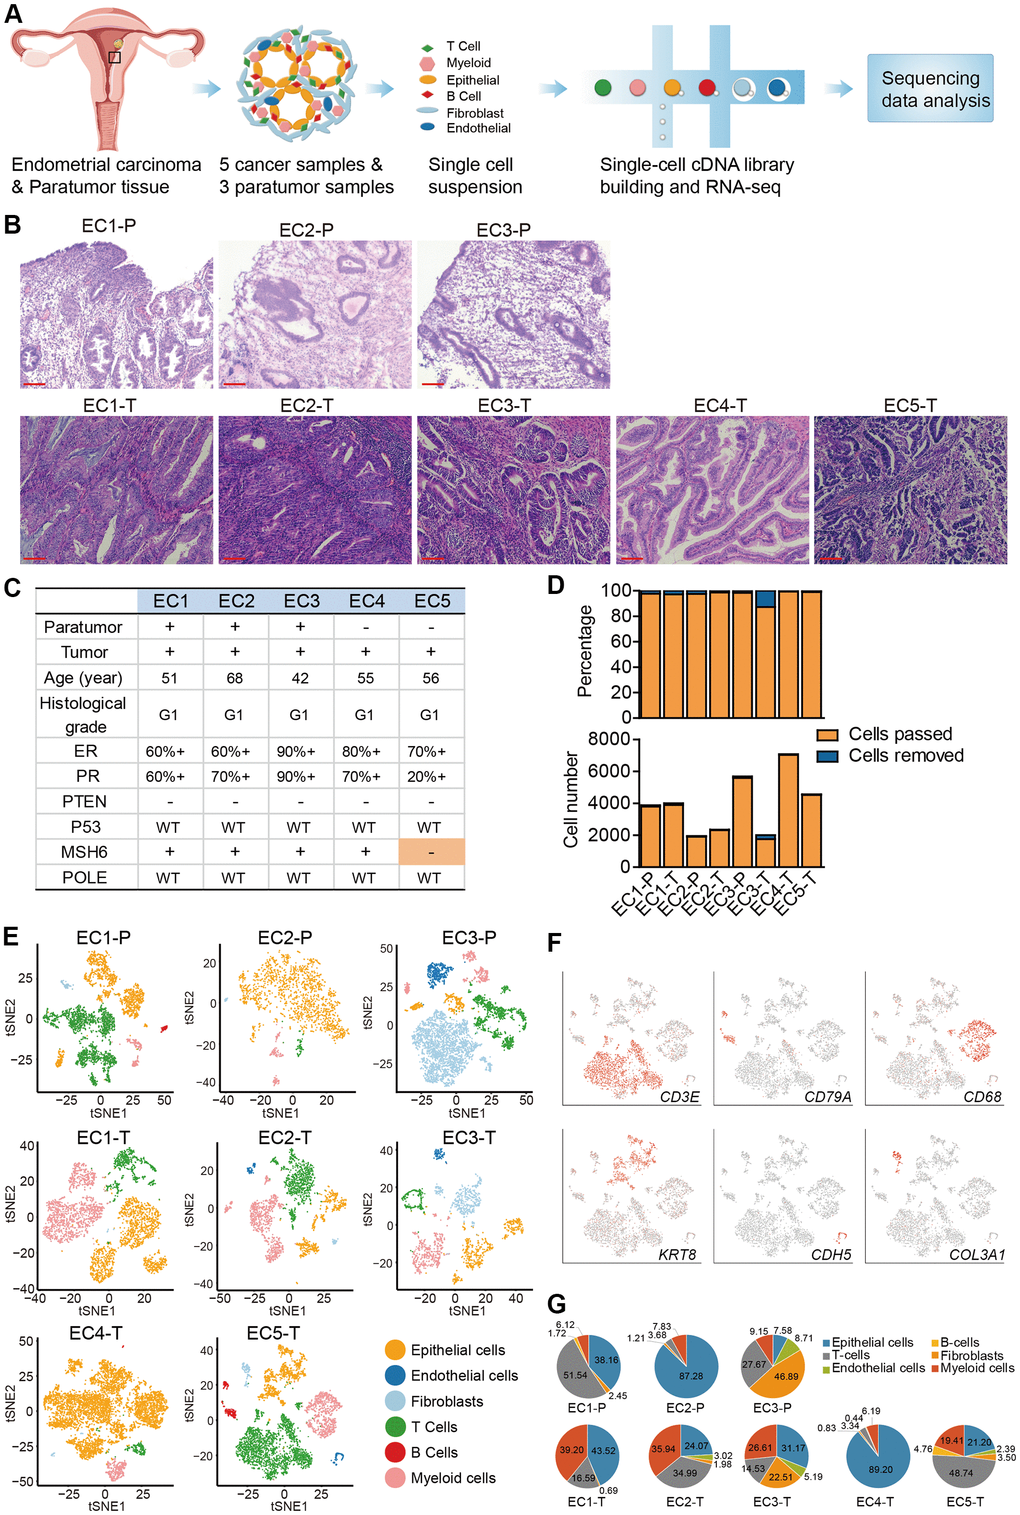 Diversity of cell types in each sample from ECC patients delineated by single-cell transcriptomic analysis. (A) Experimental workflow of scRNA-seq procedure for ECC tumors and paratumor tissues. (B) Hematoxylin and eosin (HE) staining on paratumor and tumor slides of the 5 ECC patients. Scale bars, 100 mm. (C) Samples obtained from 5 EC patients and clinicopathological characteristics of the 5 patients, more details are provided in Supplementary Figure 1B. (D) The remaining cell fraction (left bar plot) and cell number (right bar plot) after quality control and filtering step for each biopsy. (E) The t-distributed stochastic neighbor embedding (t-SNE) plot demonstrates the major cell types in each sample. (F) Expression of representative marker genes of the major cell types defined in EC samples. (G) The percentage of cell types assigned to each sample in (E). Pie charts of cell-type fractions for tumor-infiltrating immune cells of each patient, colored by cell type.